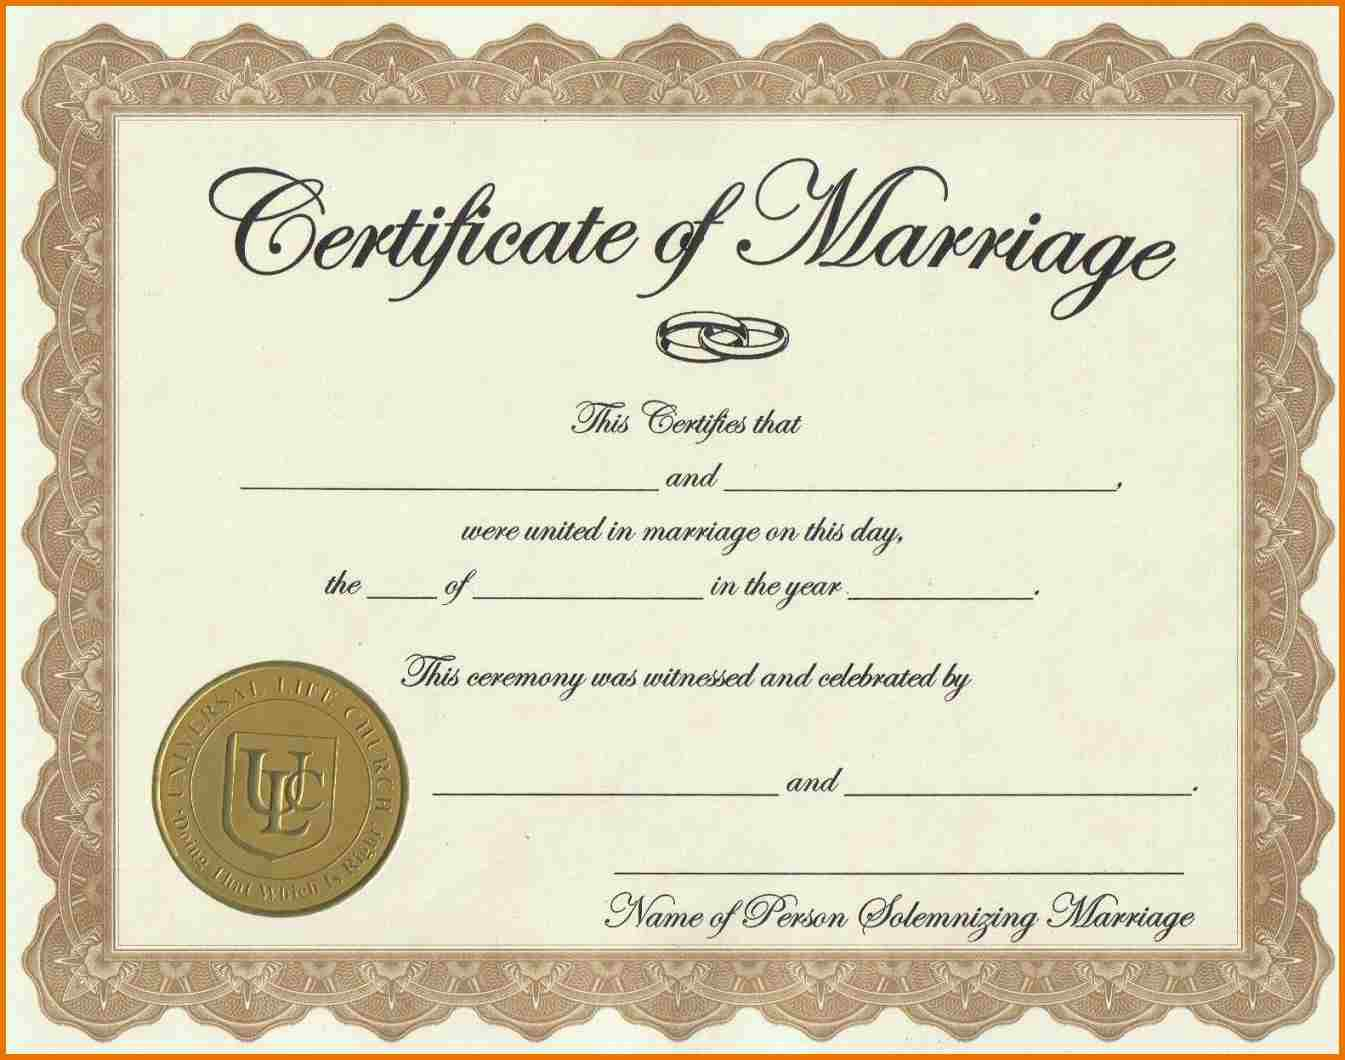 Name Change After Marriage Checklist By Laura Ingram Medium